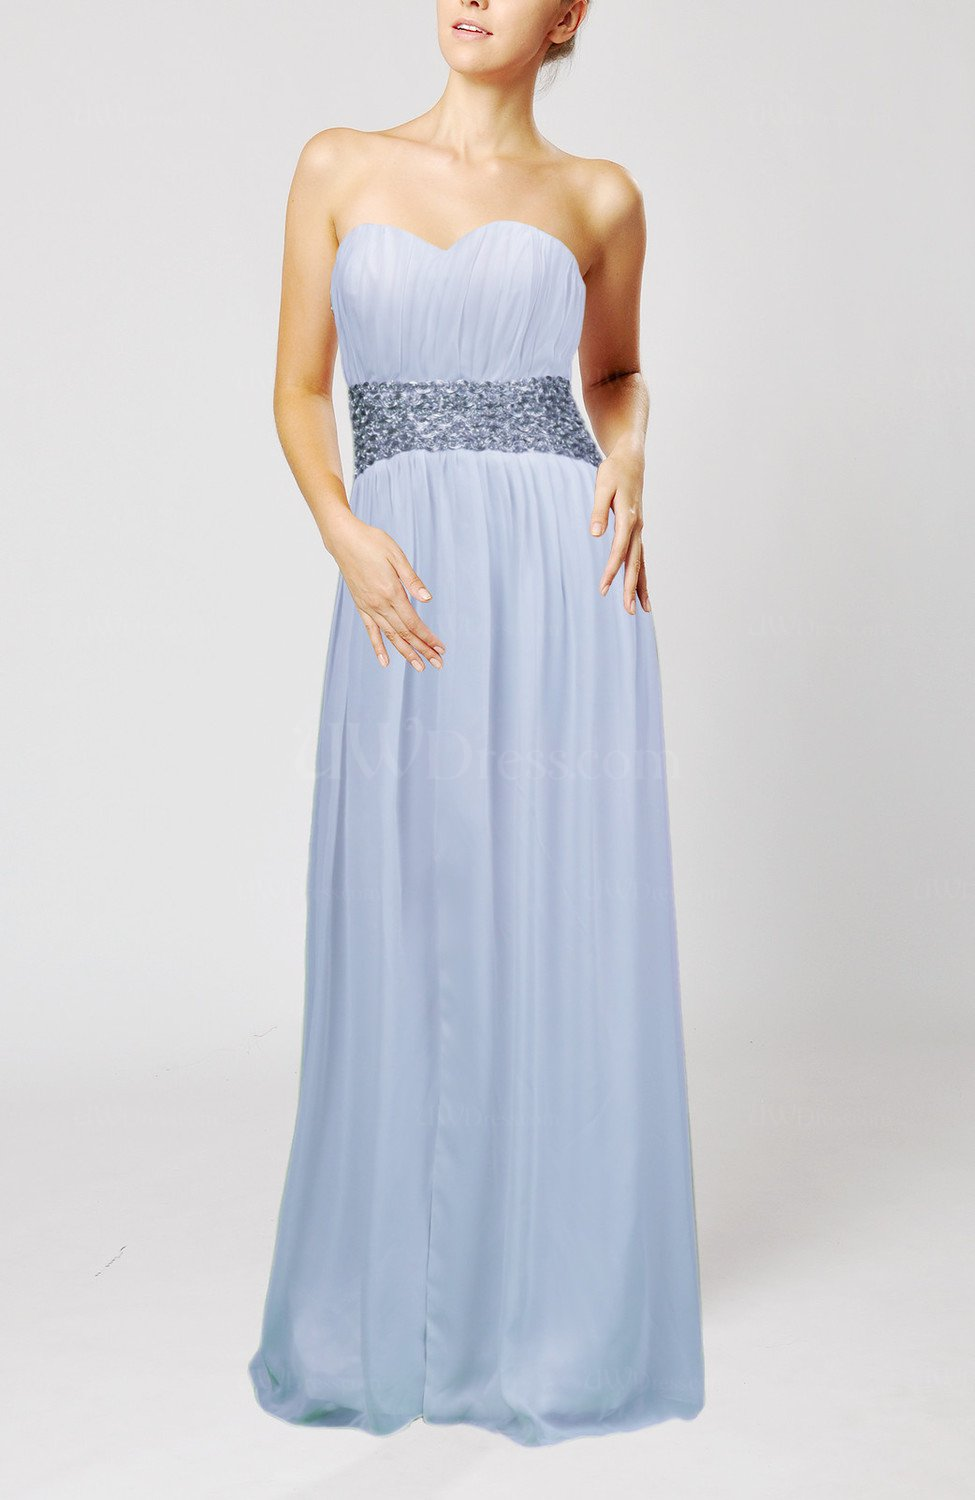 Ice Blue Simple Sheath Sleeveless Floor Length Sash